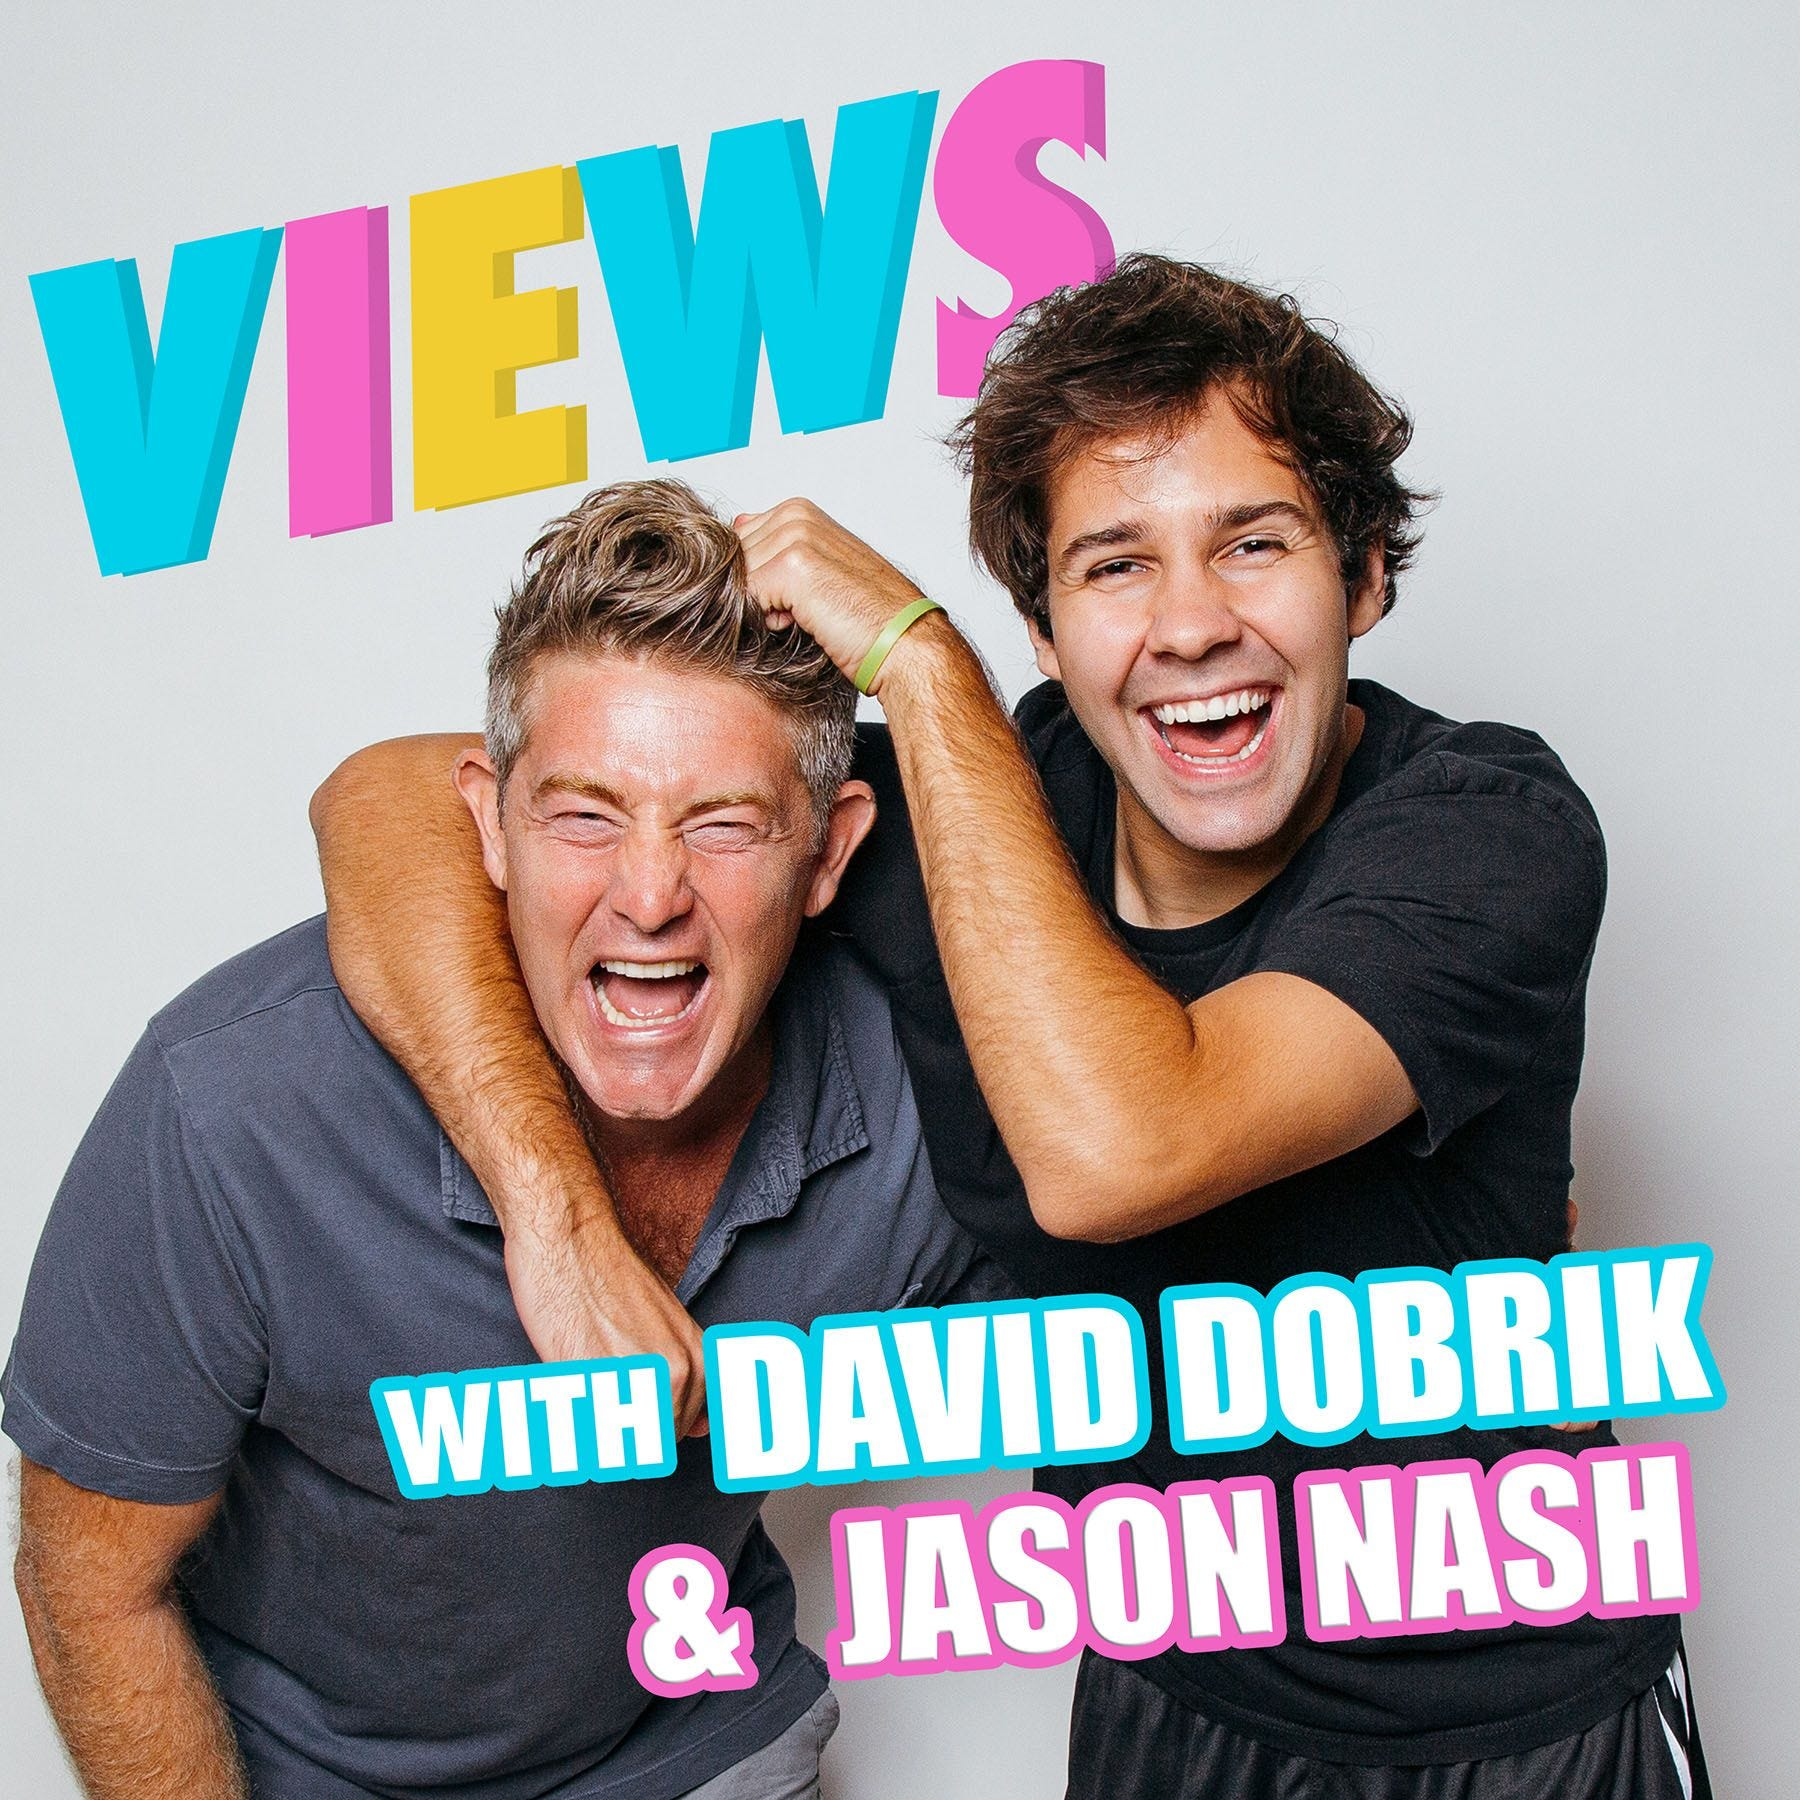 VIEWS with David Dobrik & Jason Nash